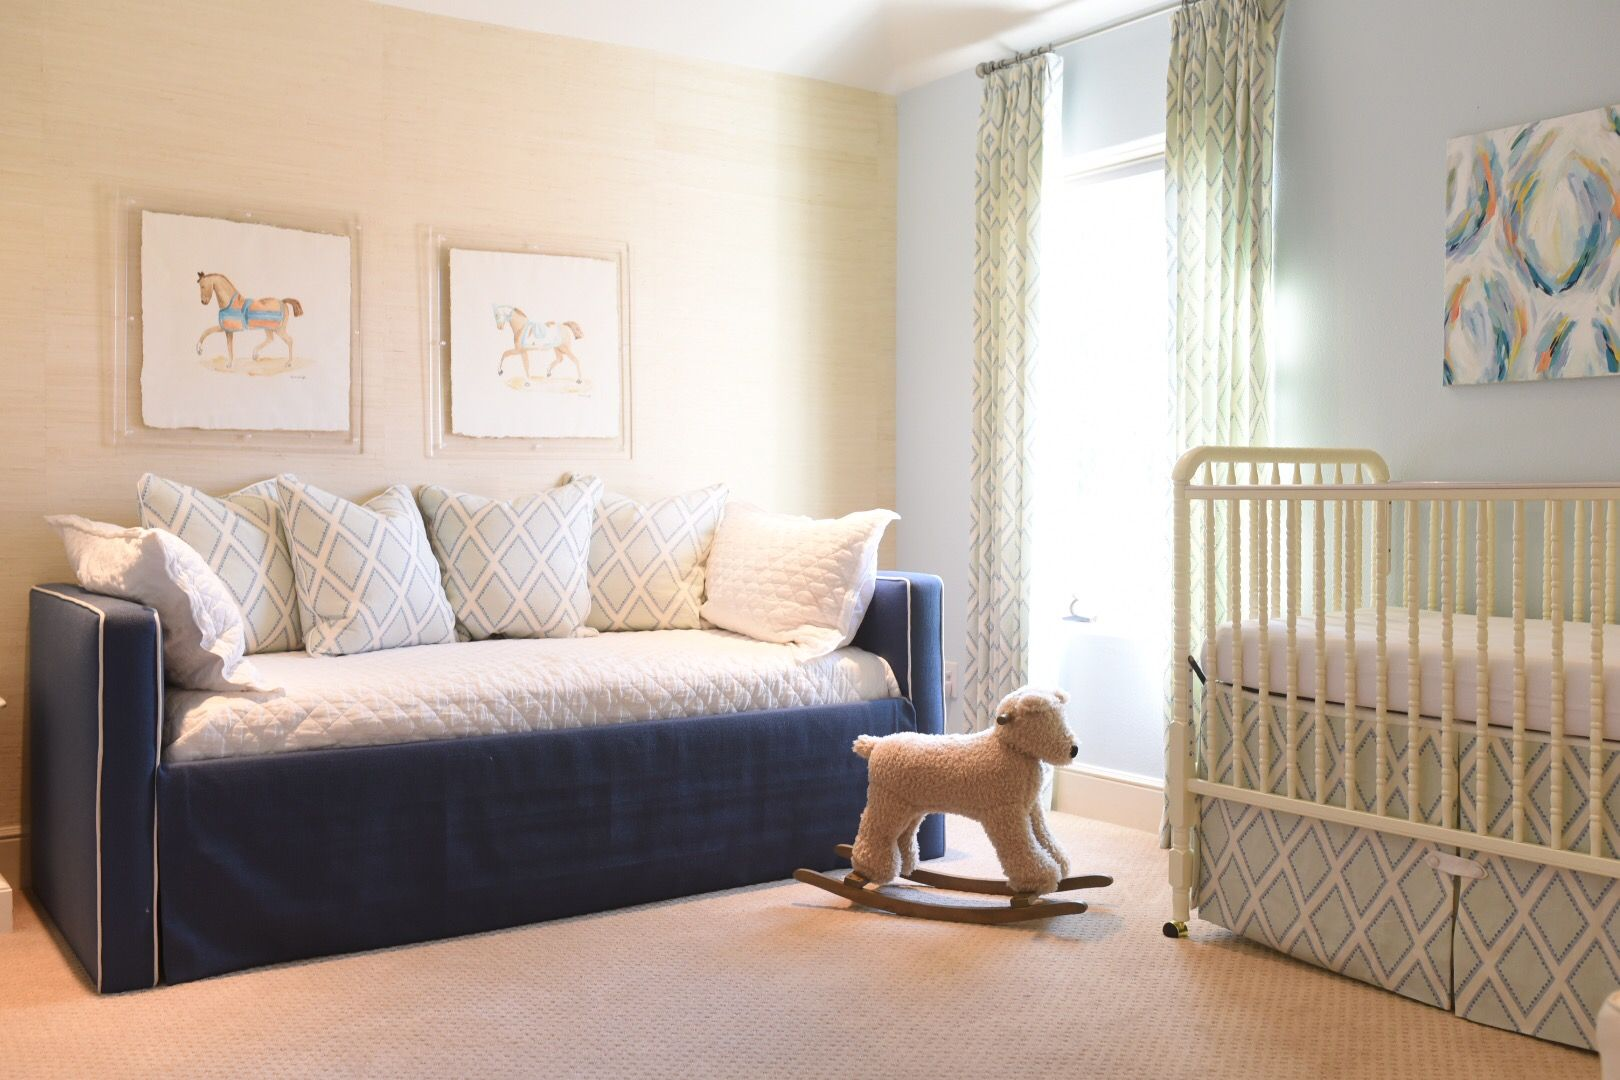 Nursery Daybed In Our Client S Home Liven Up In Amazing